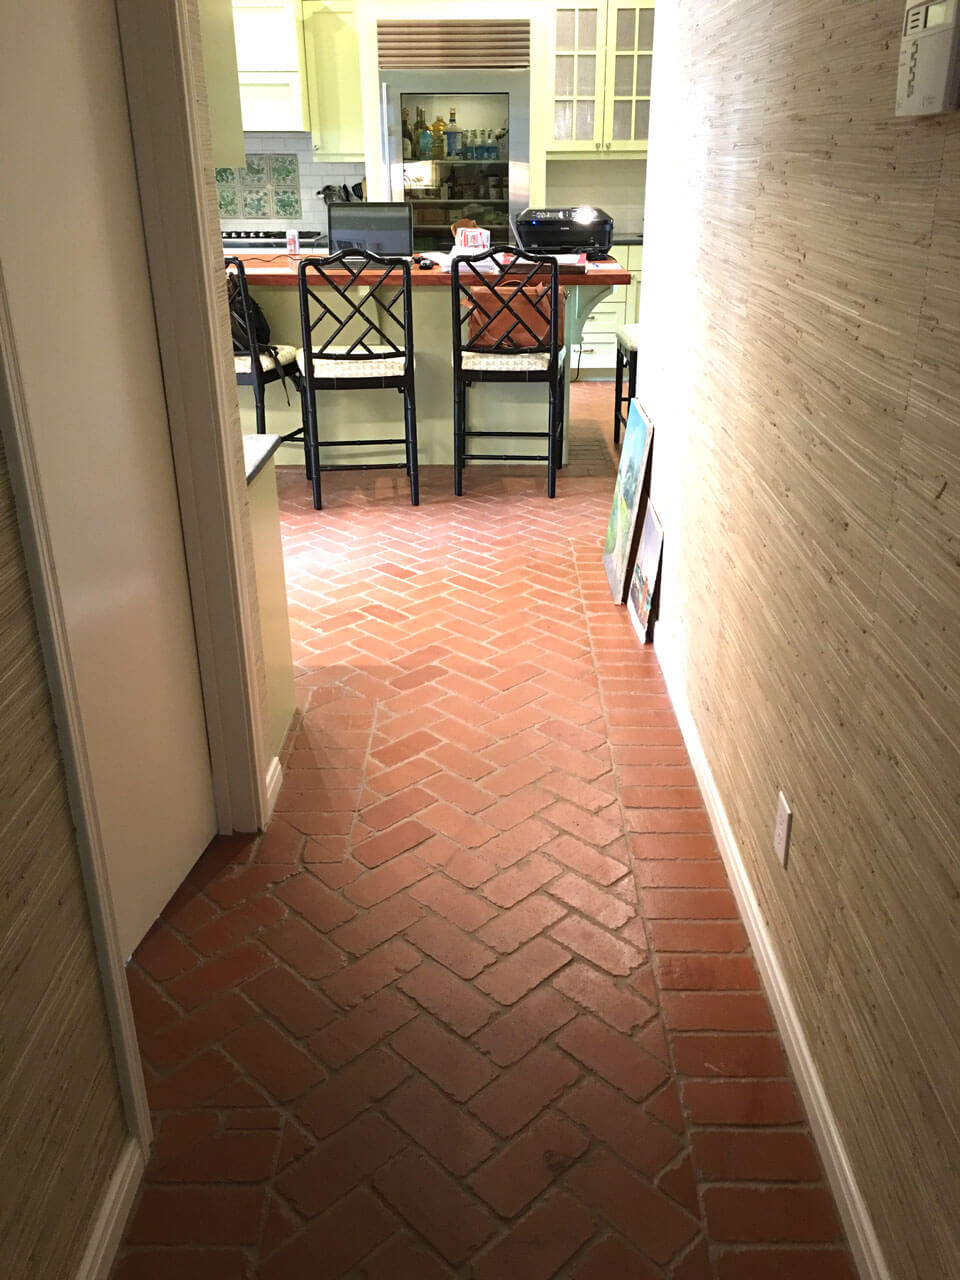 Tumbled Brick Tile Floor2 960x1280